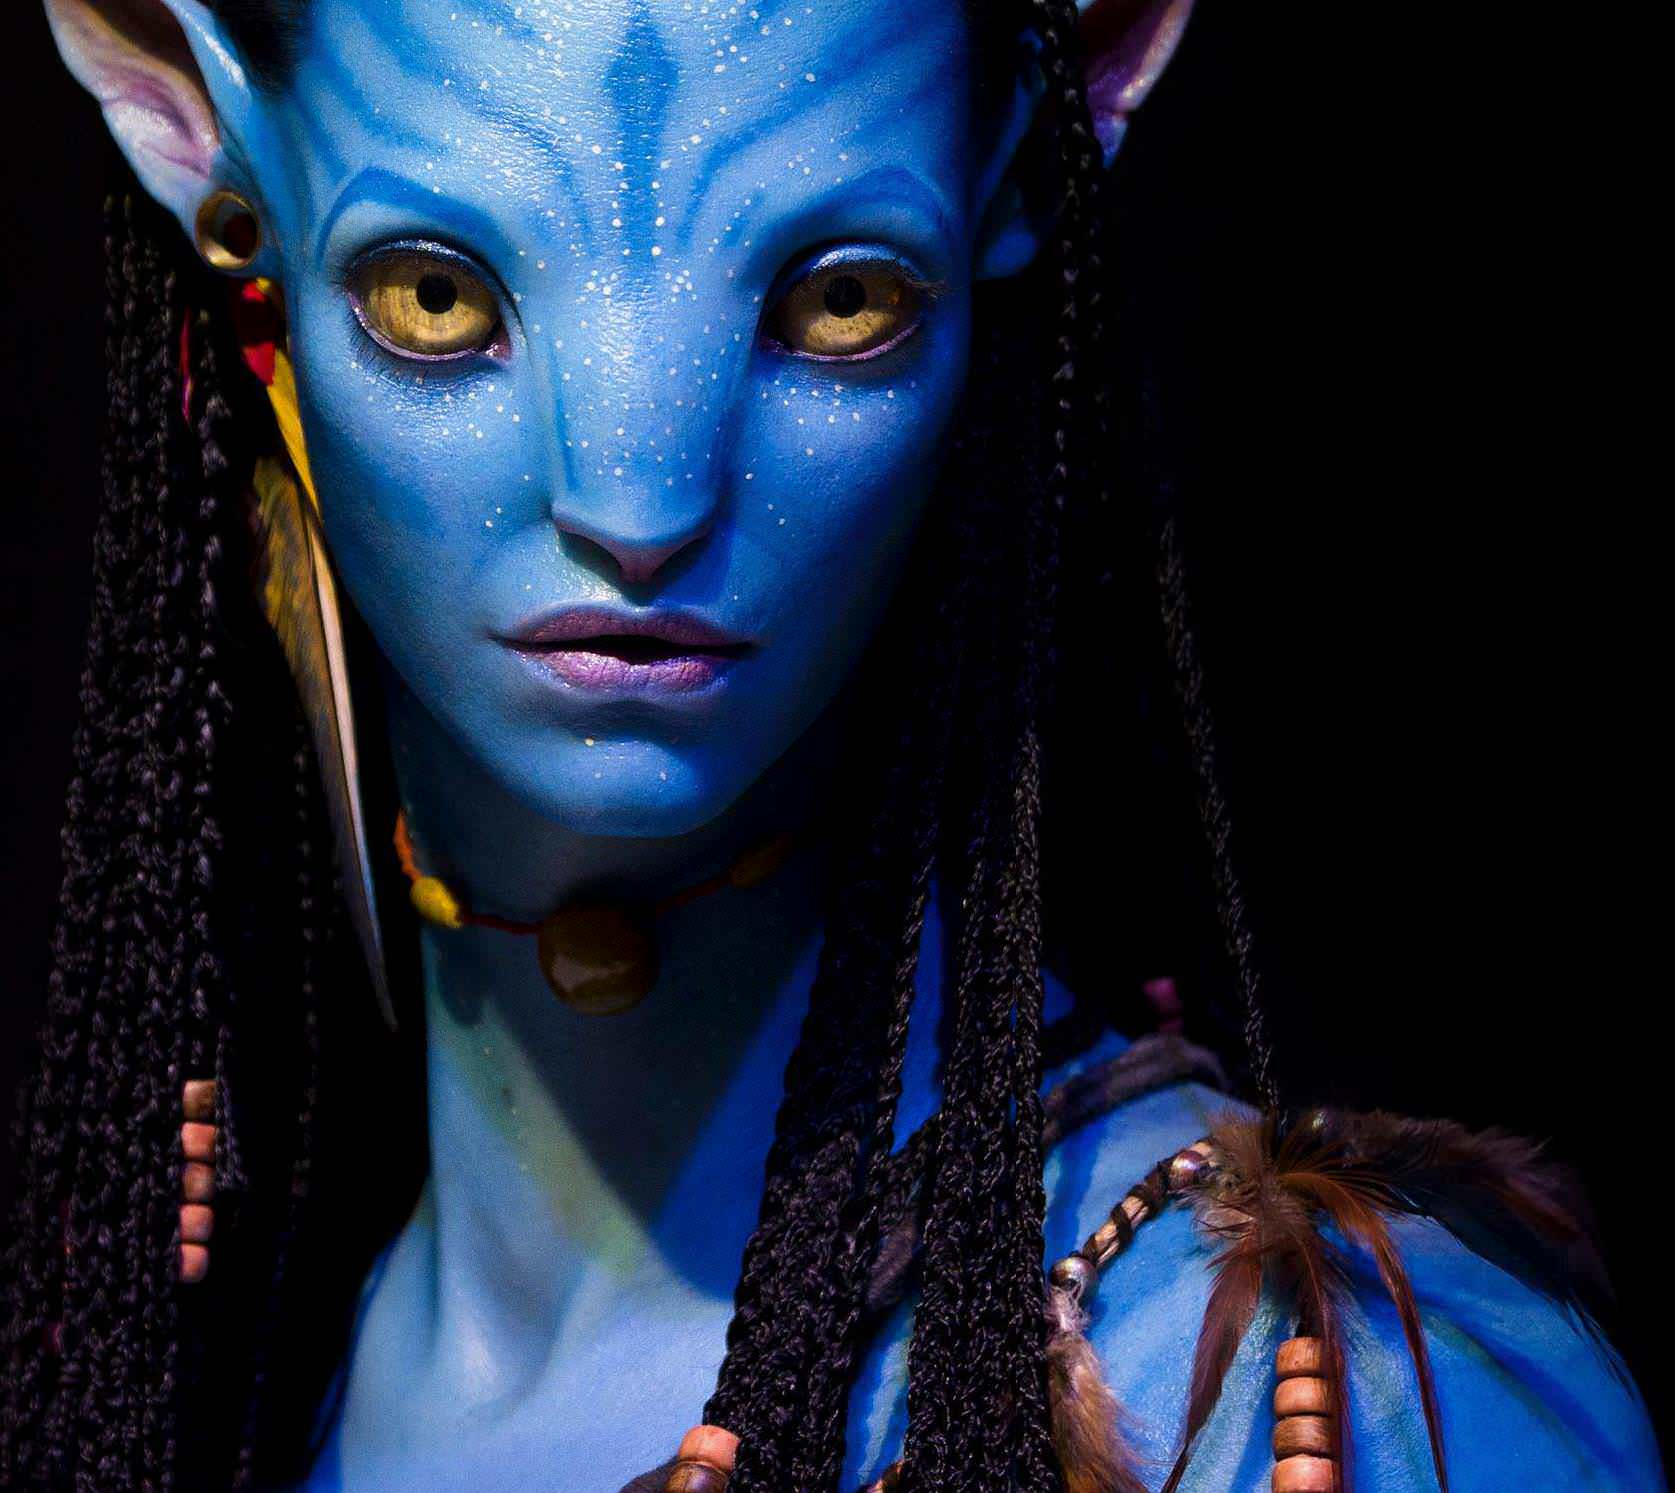 Avatar 3 2021: 'Avatar' Sequels Now Scheduled To Start In December 2020